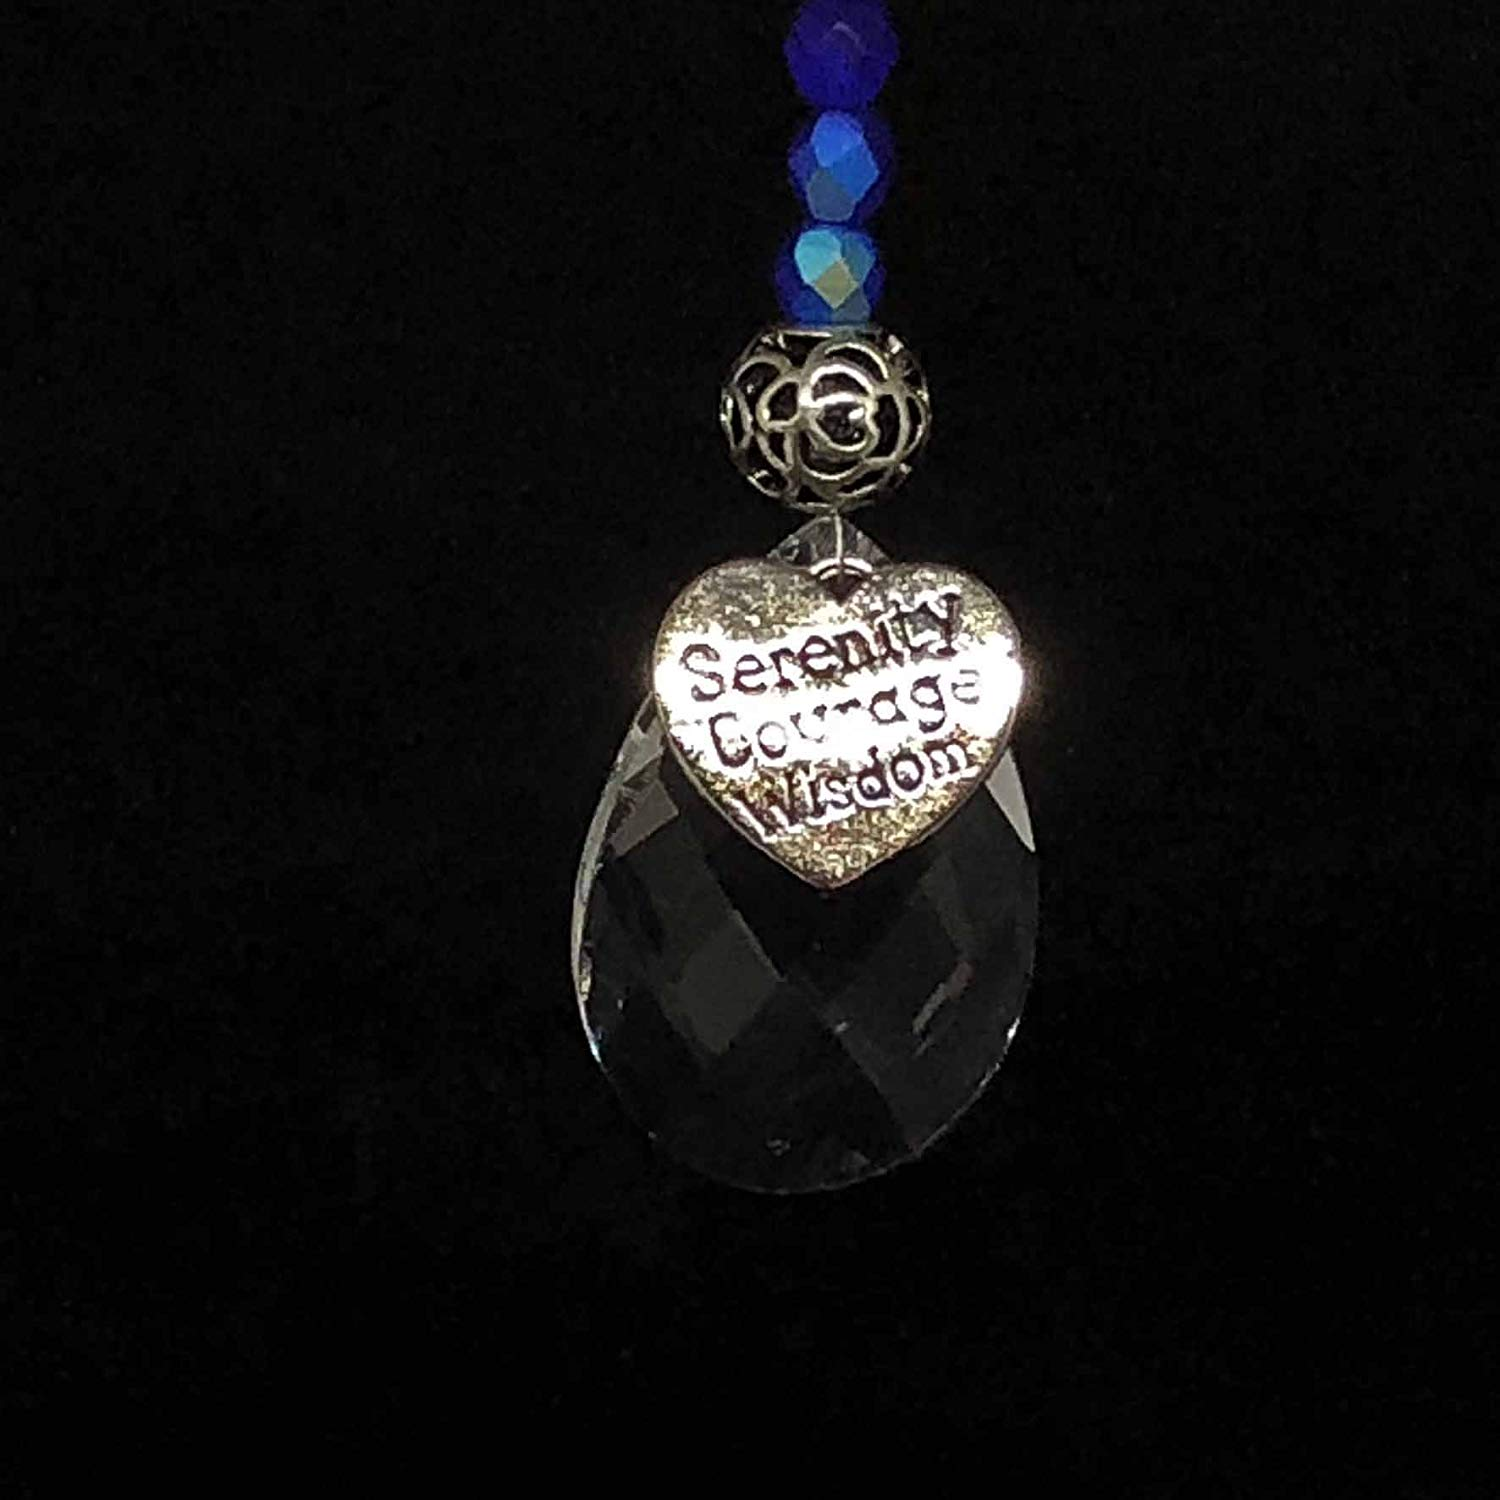 Car Charm Jewelry Accessories Rear View Mirror Hanger ROYAL BLUE with SERENITY COURAGE WISDOM